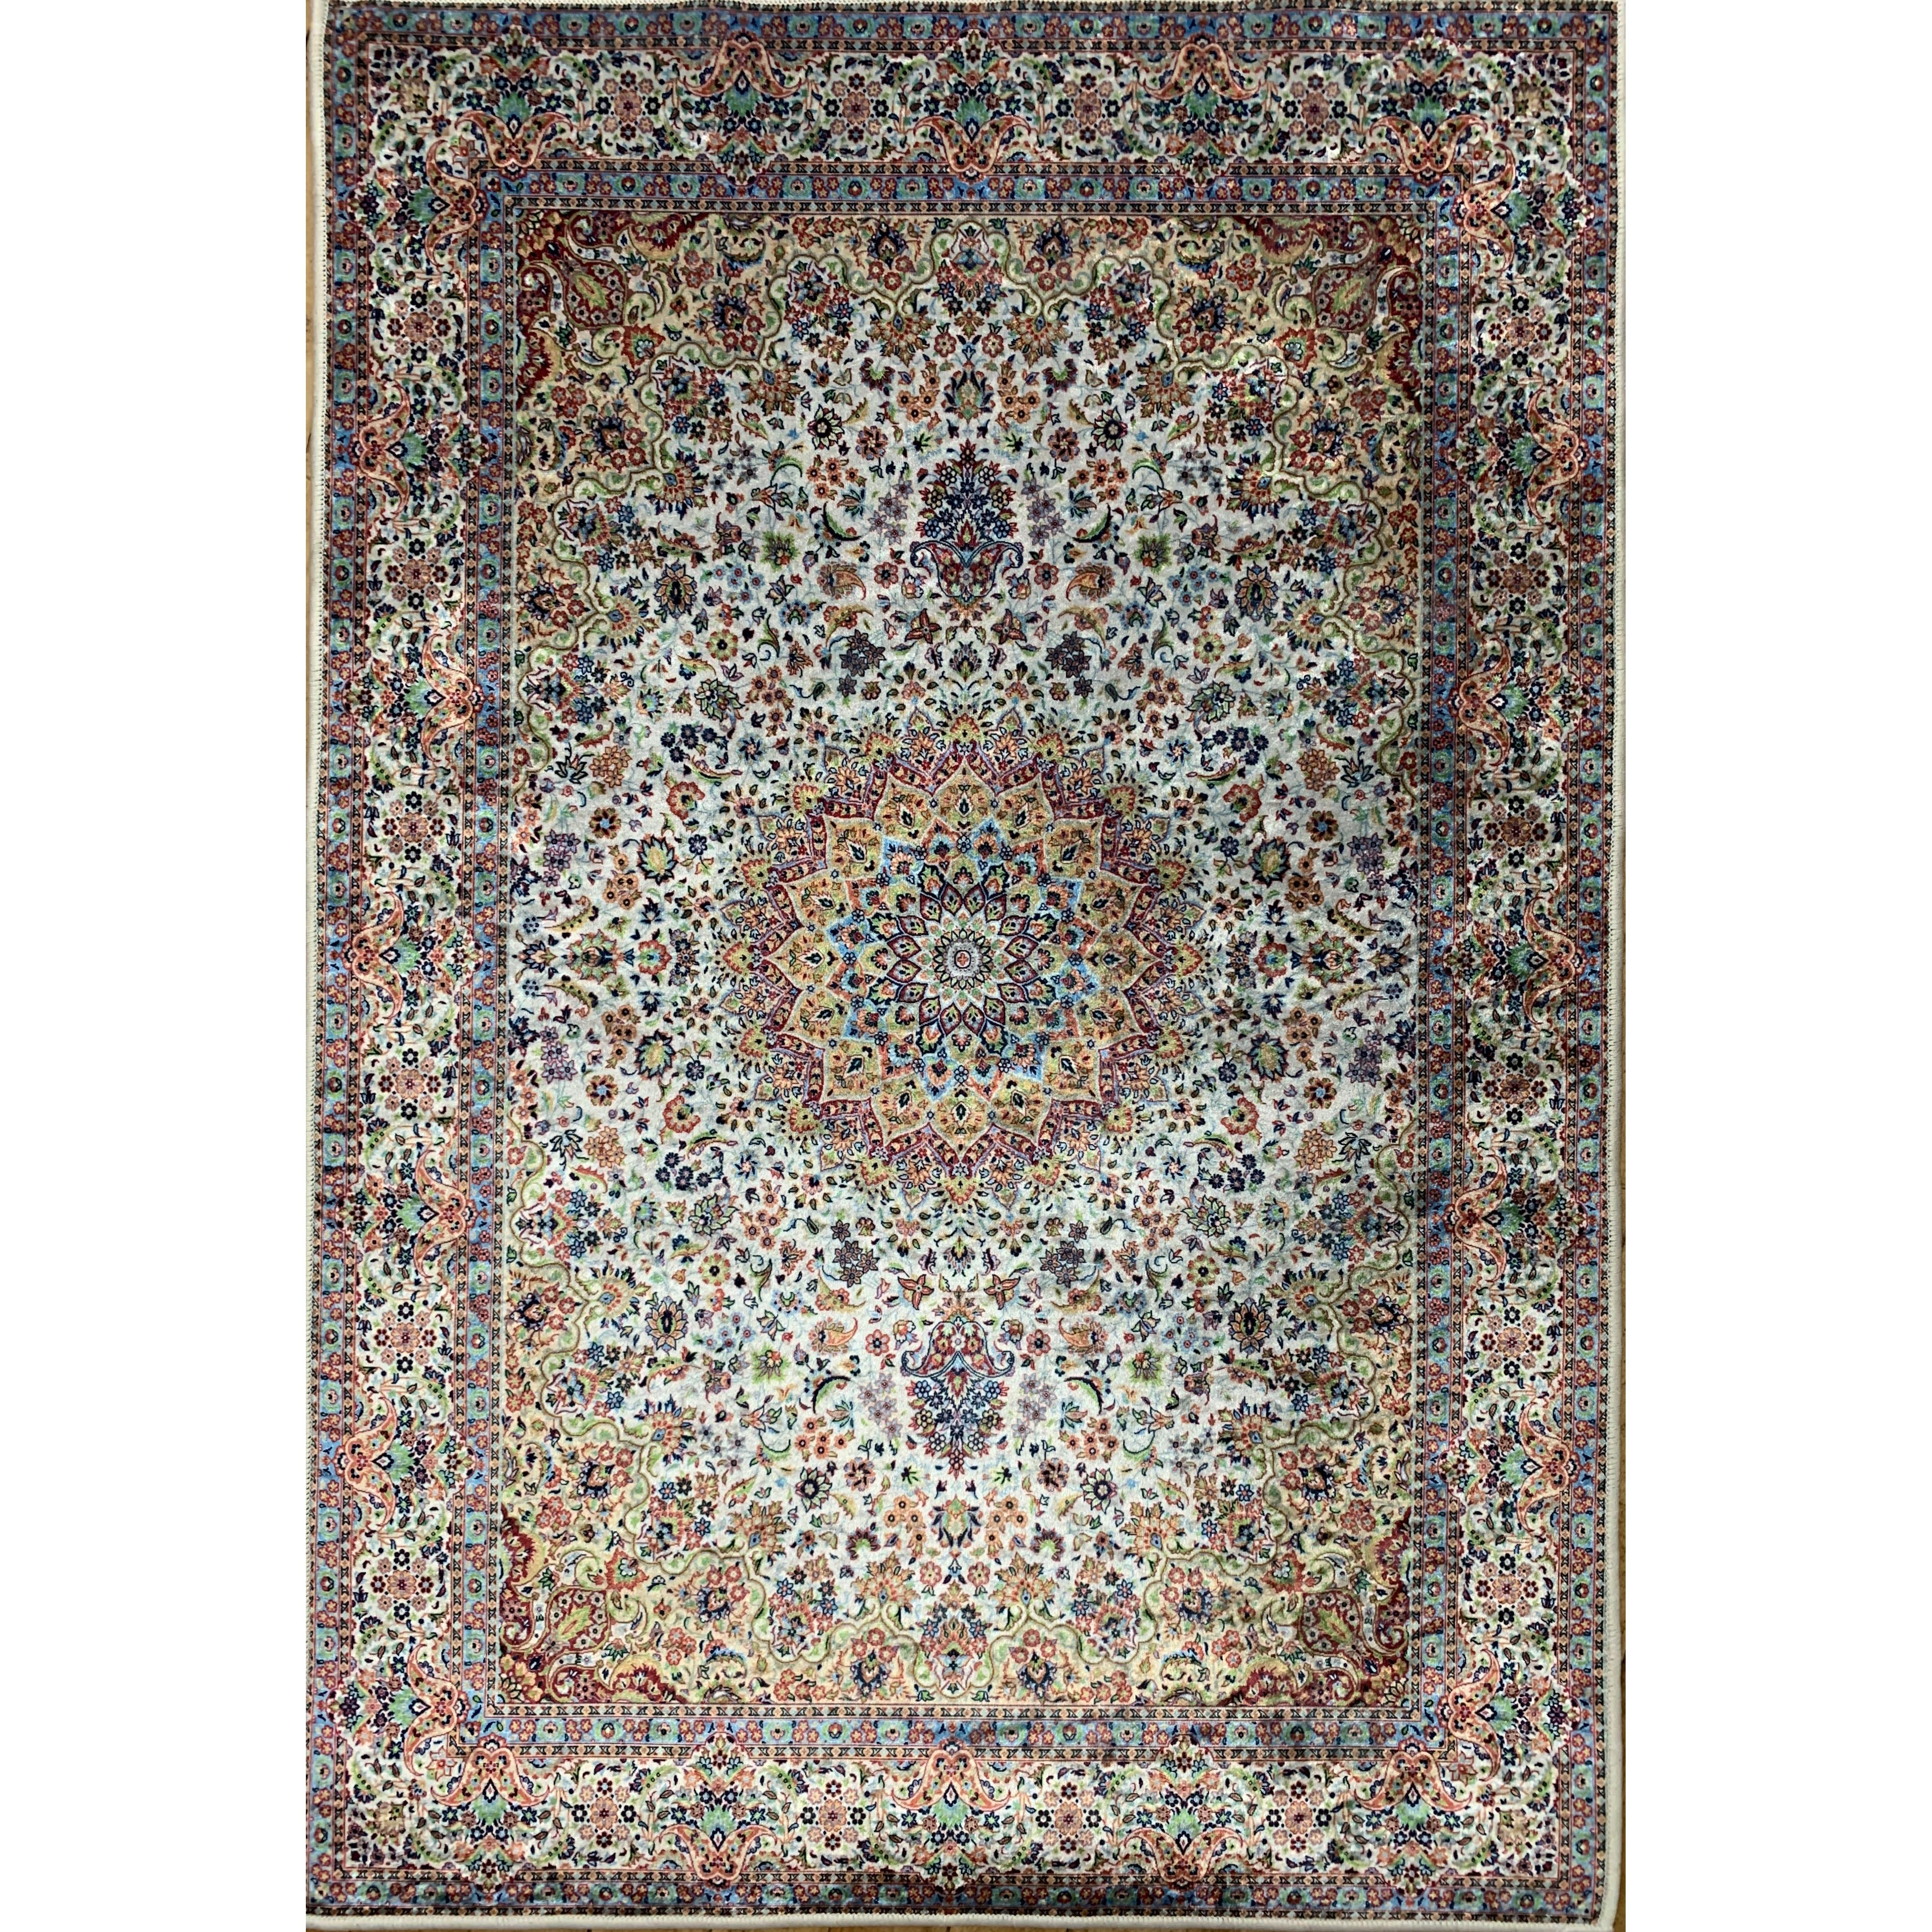 Emerald Collection Beige / Gold Rug 2ft2in x 3ft2in